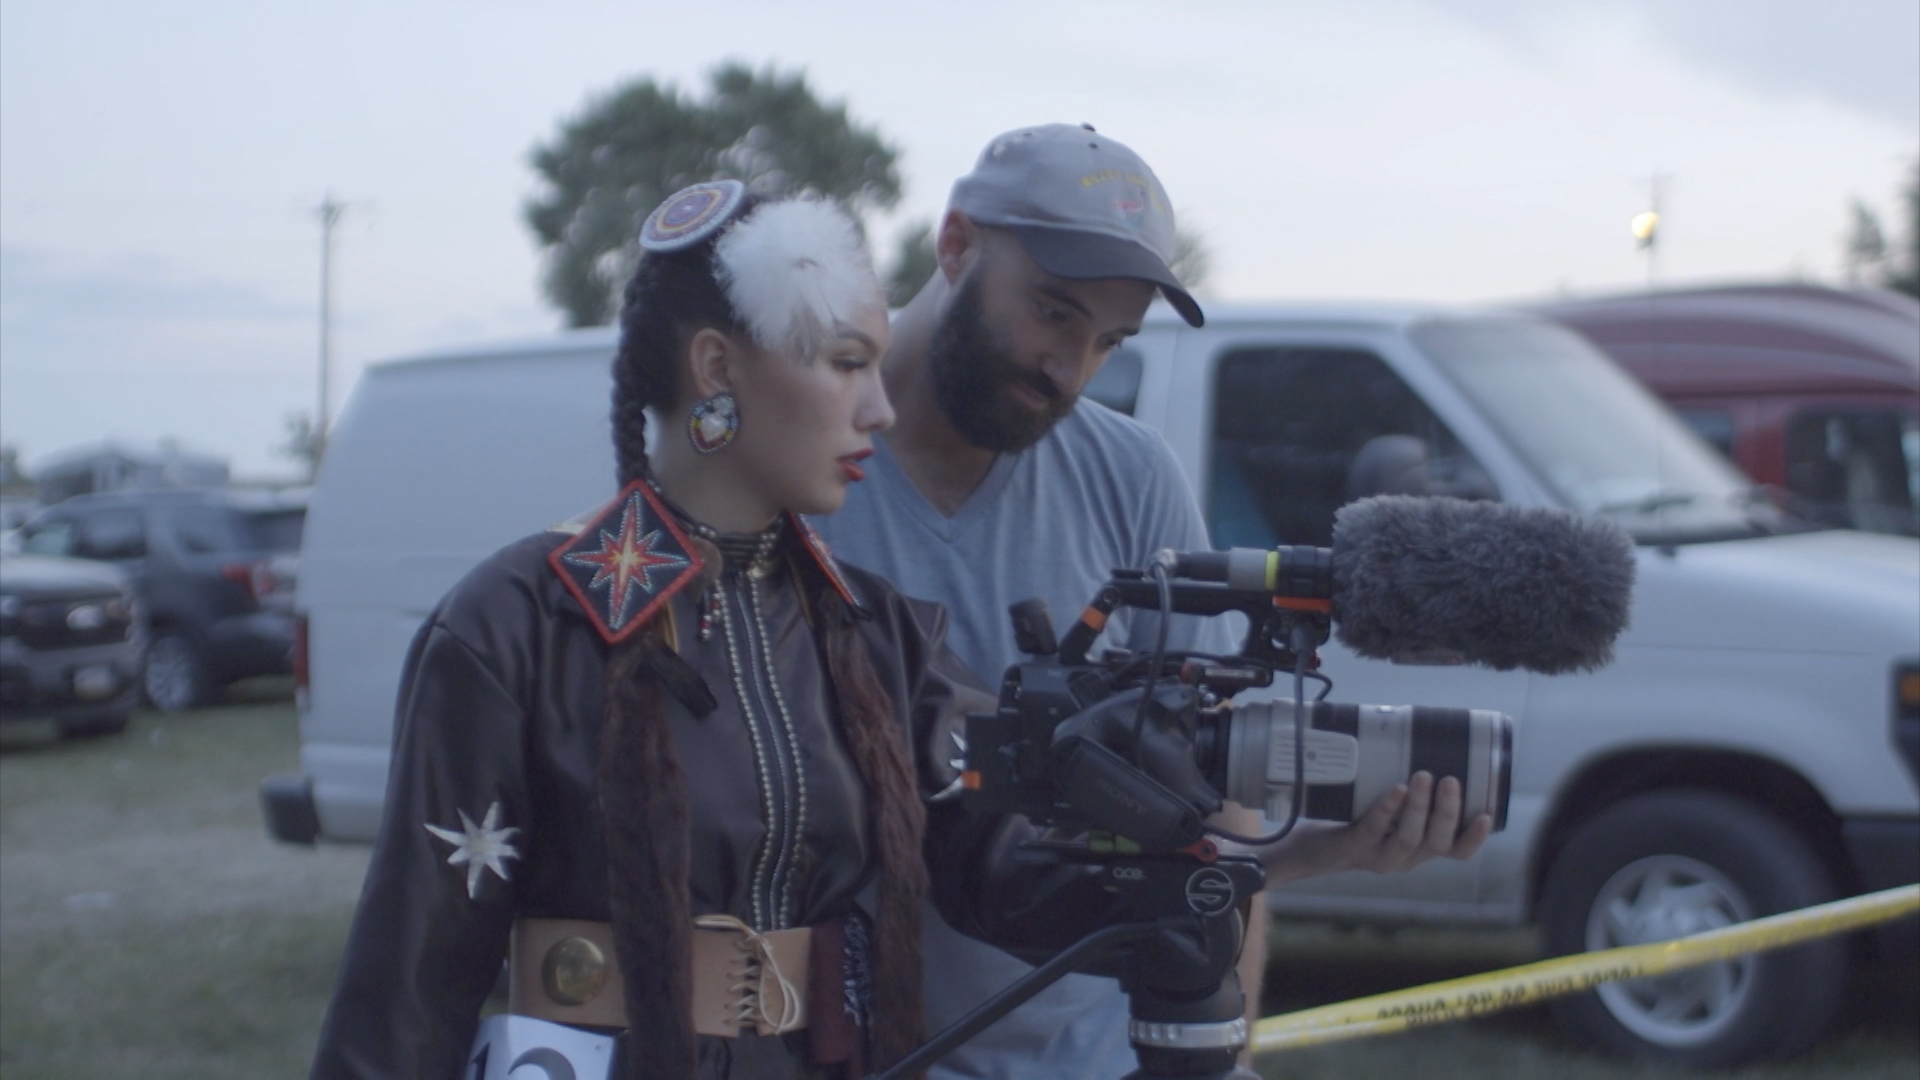 A young woman with dark braided hair and wearing Native American clothes and hair pieces looks at film camera with man with beard, cap and t-shirt.